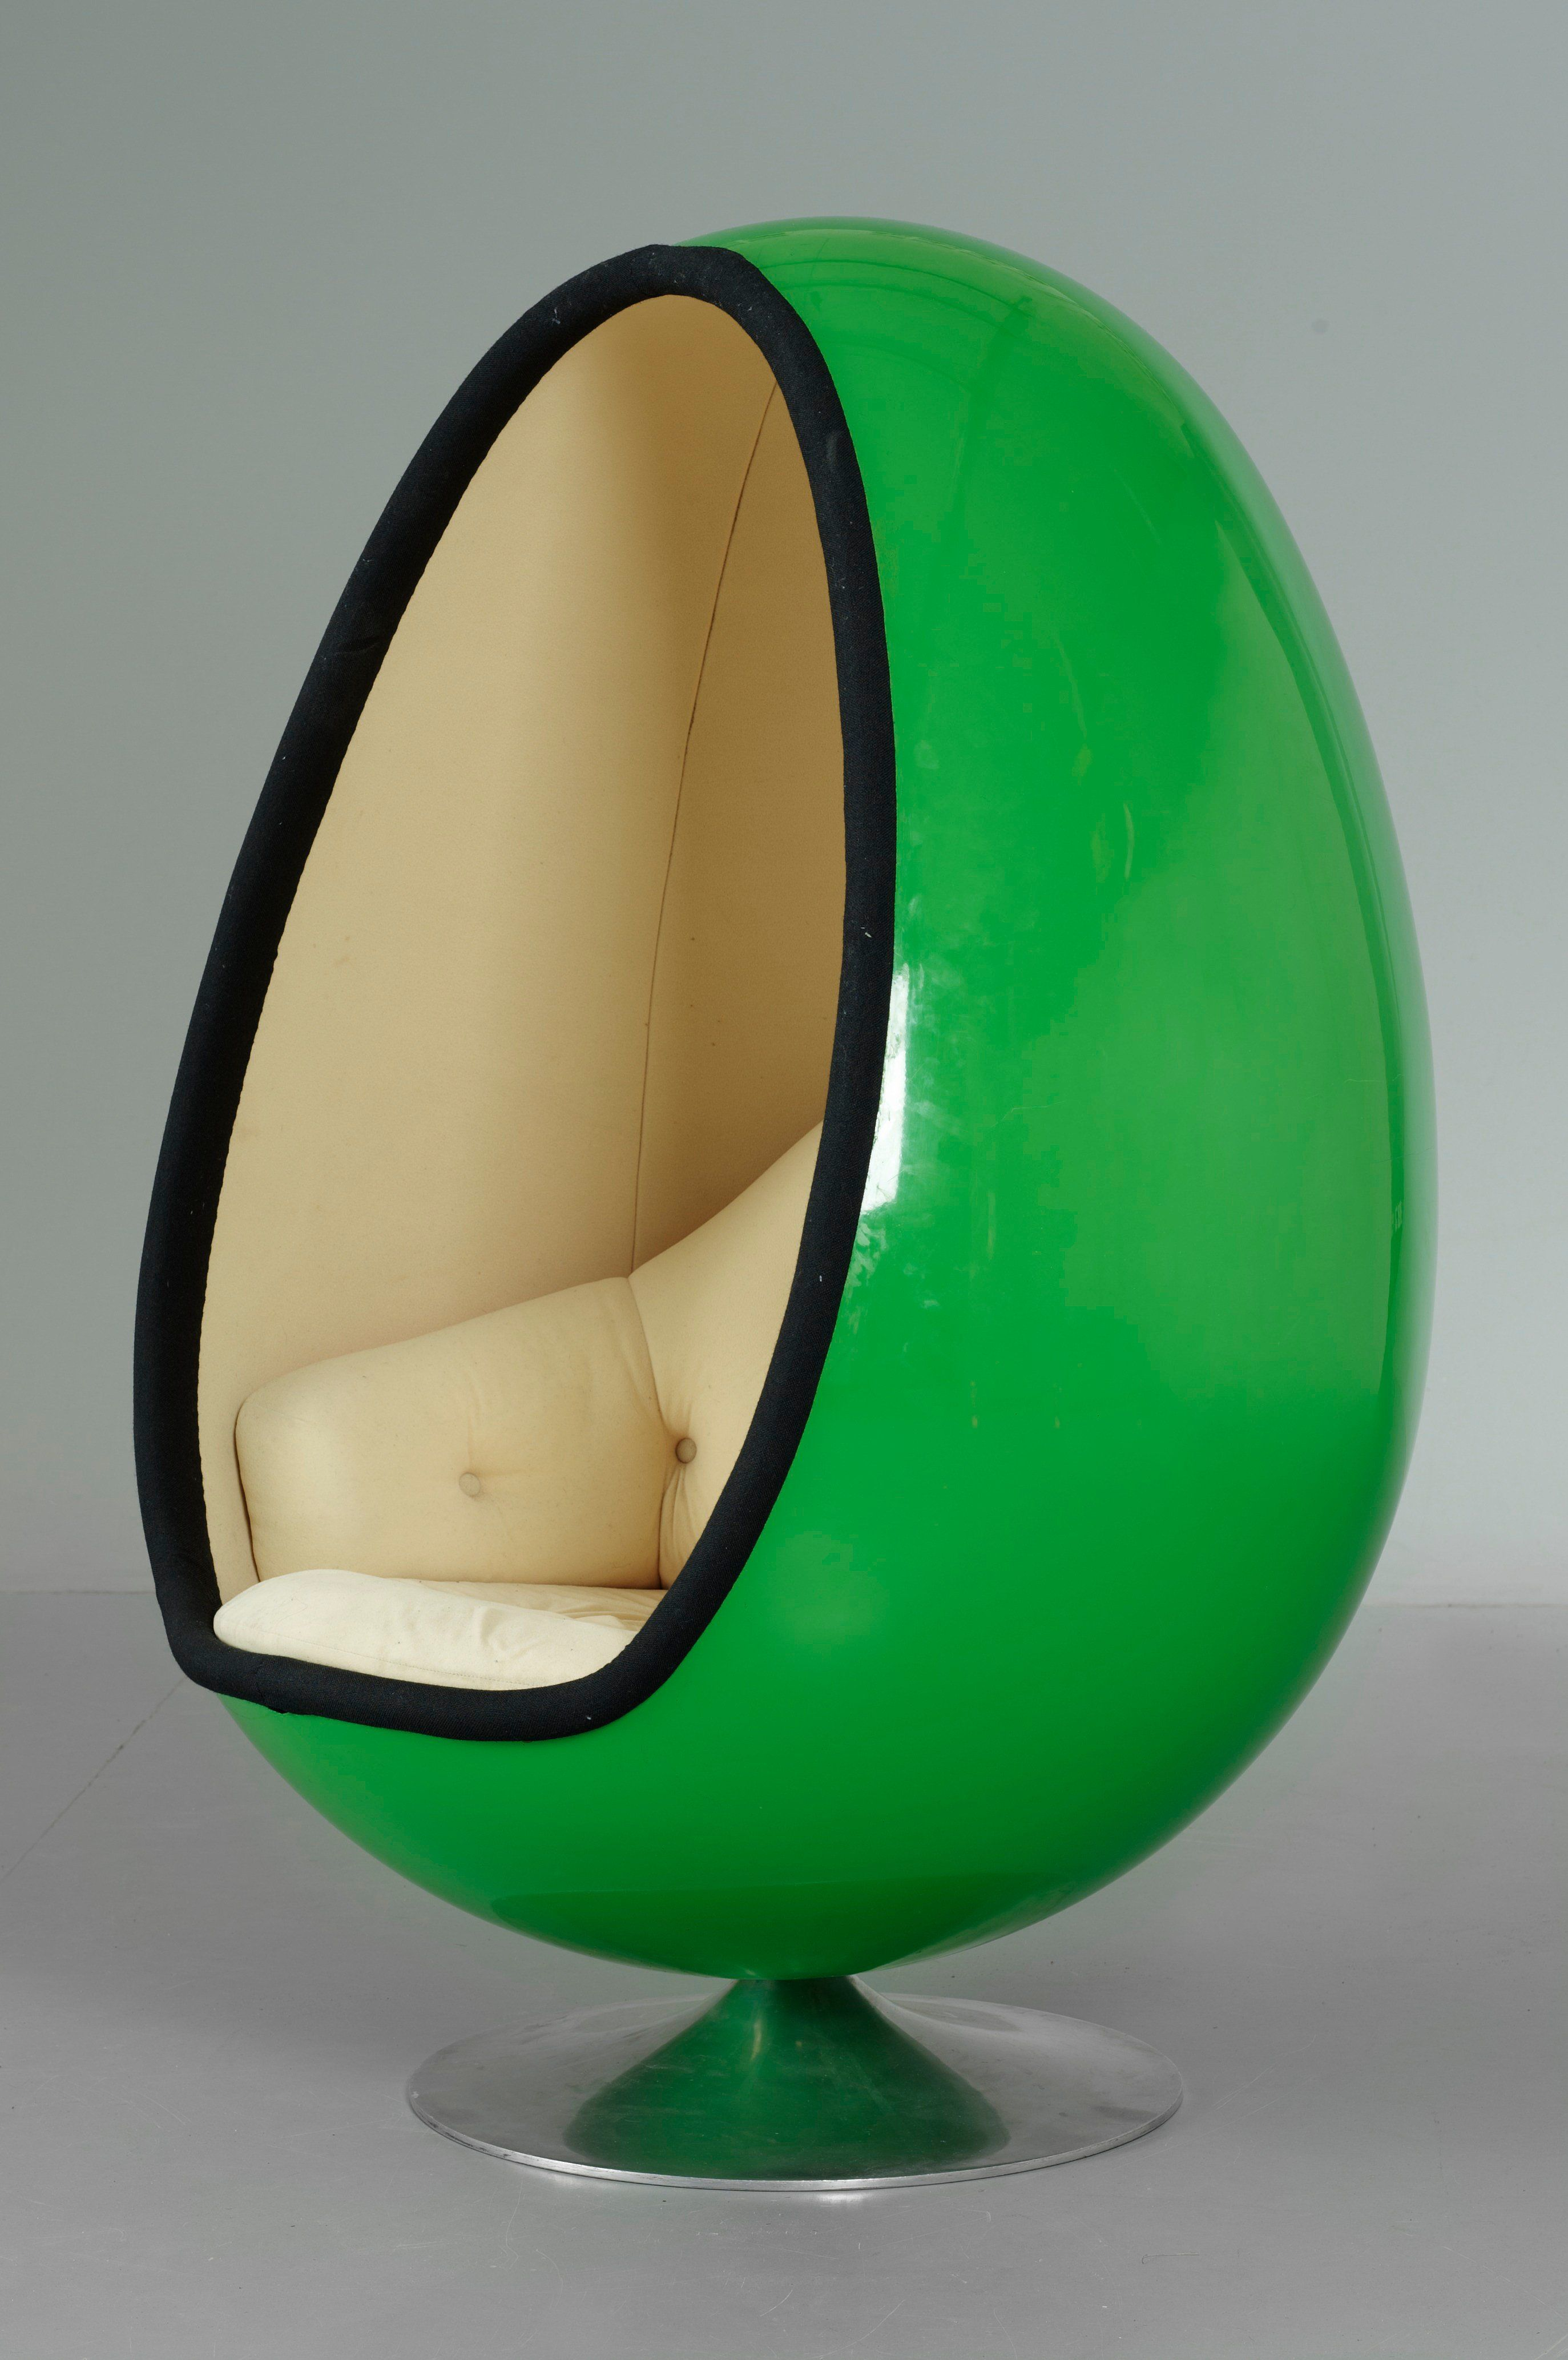 Vintage Green Mid Century Modern Orb Egg Chair Uniquechair With